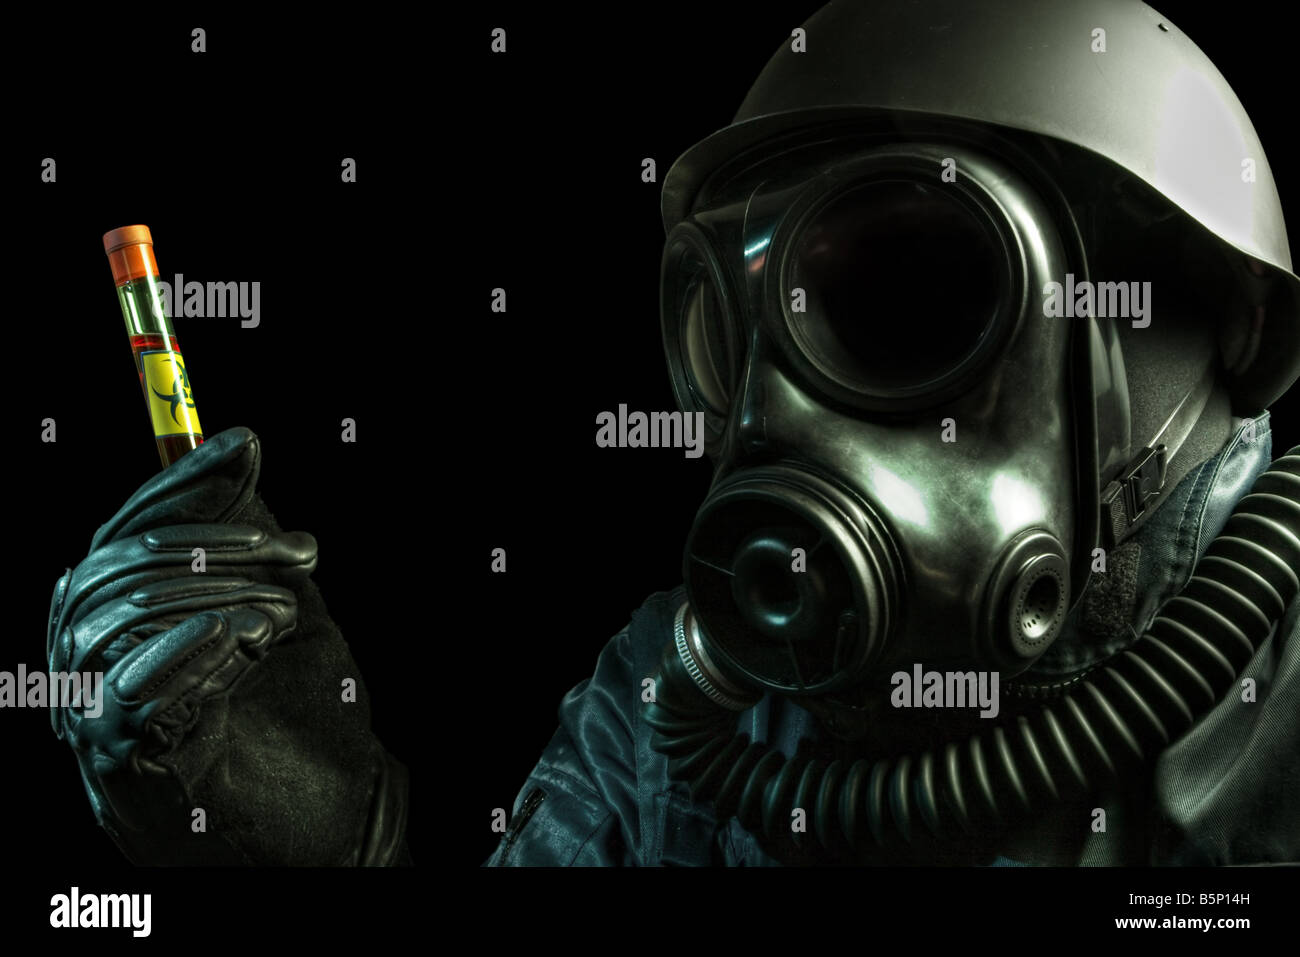 Gas masked man holding a test tube with biohazard symbol - Stock Image